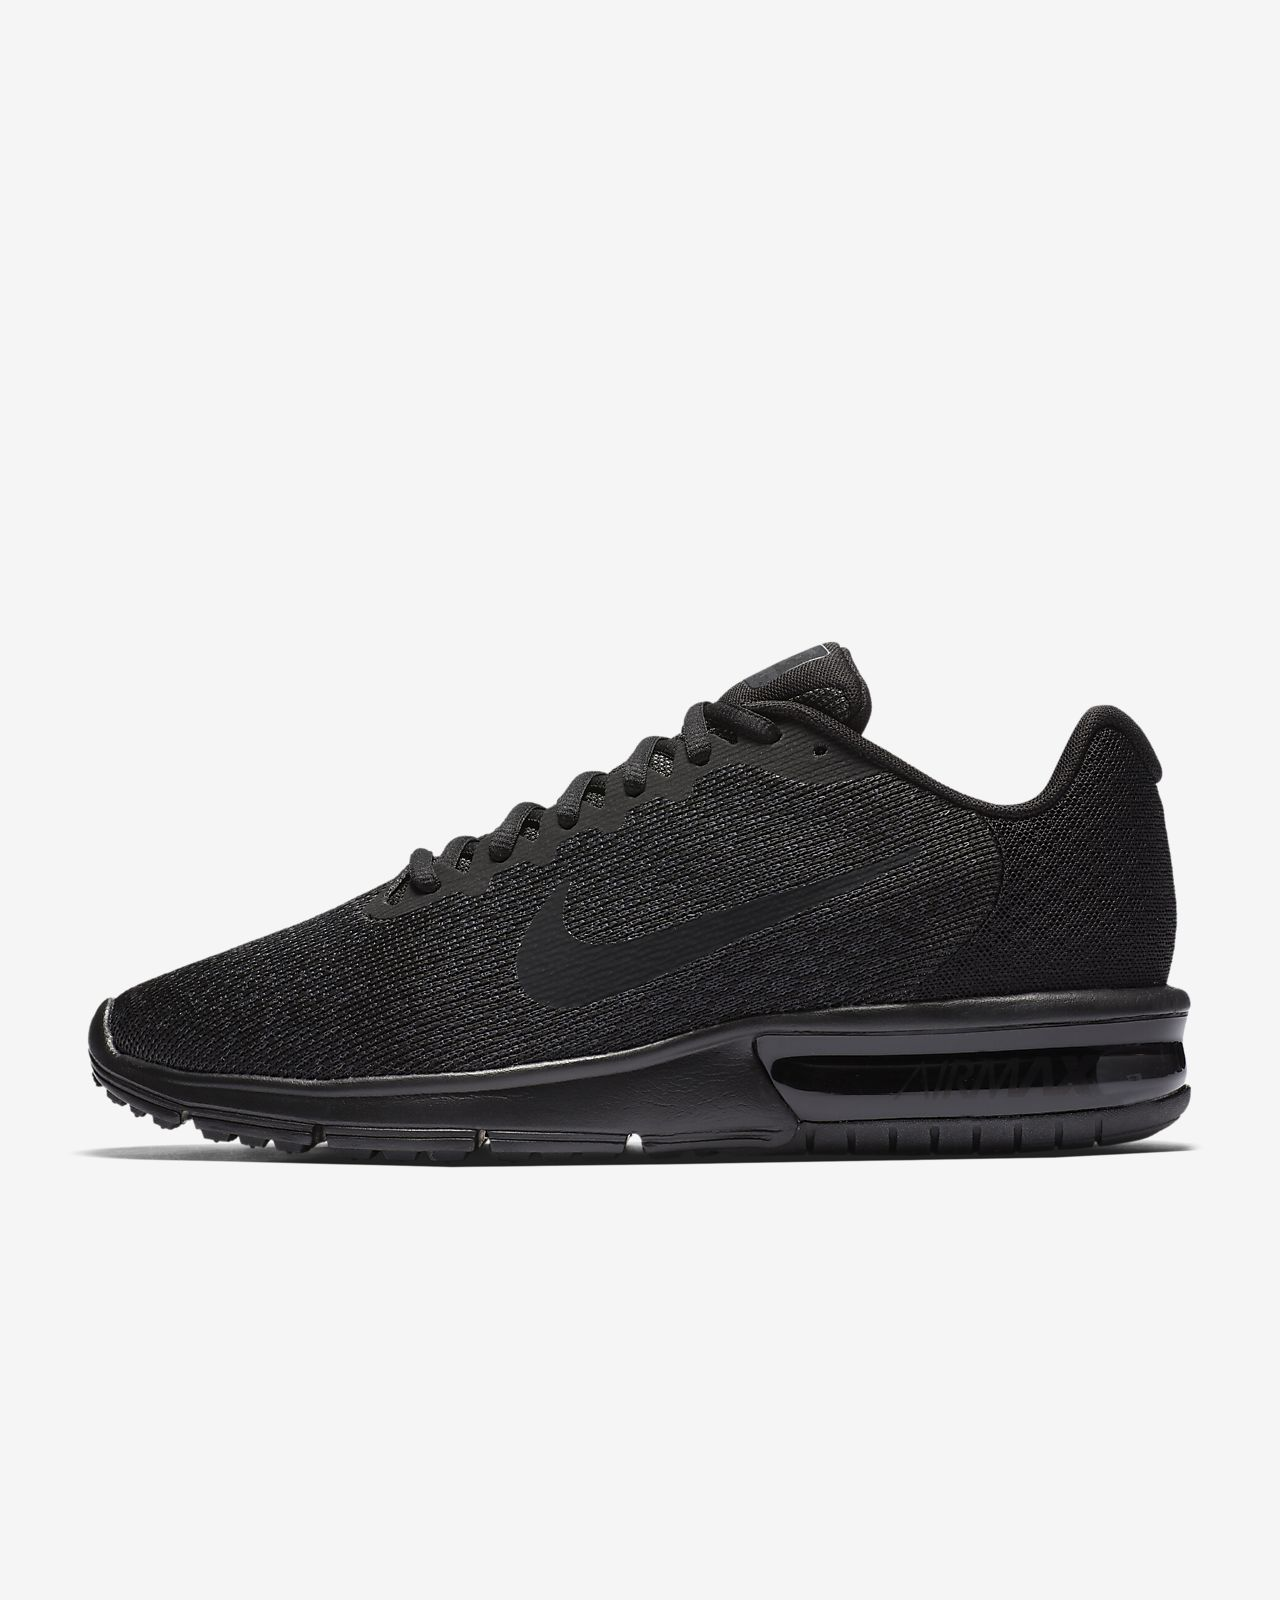 Nike Airmax 2017 leak repair 2017 How to fix your airmax